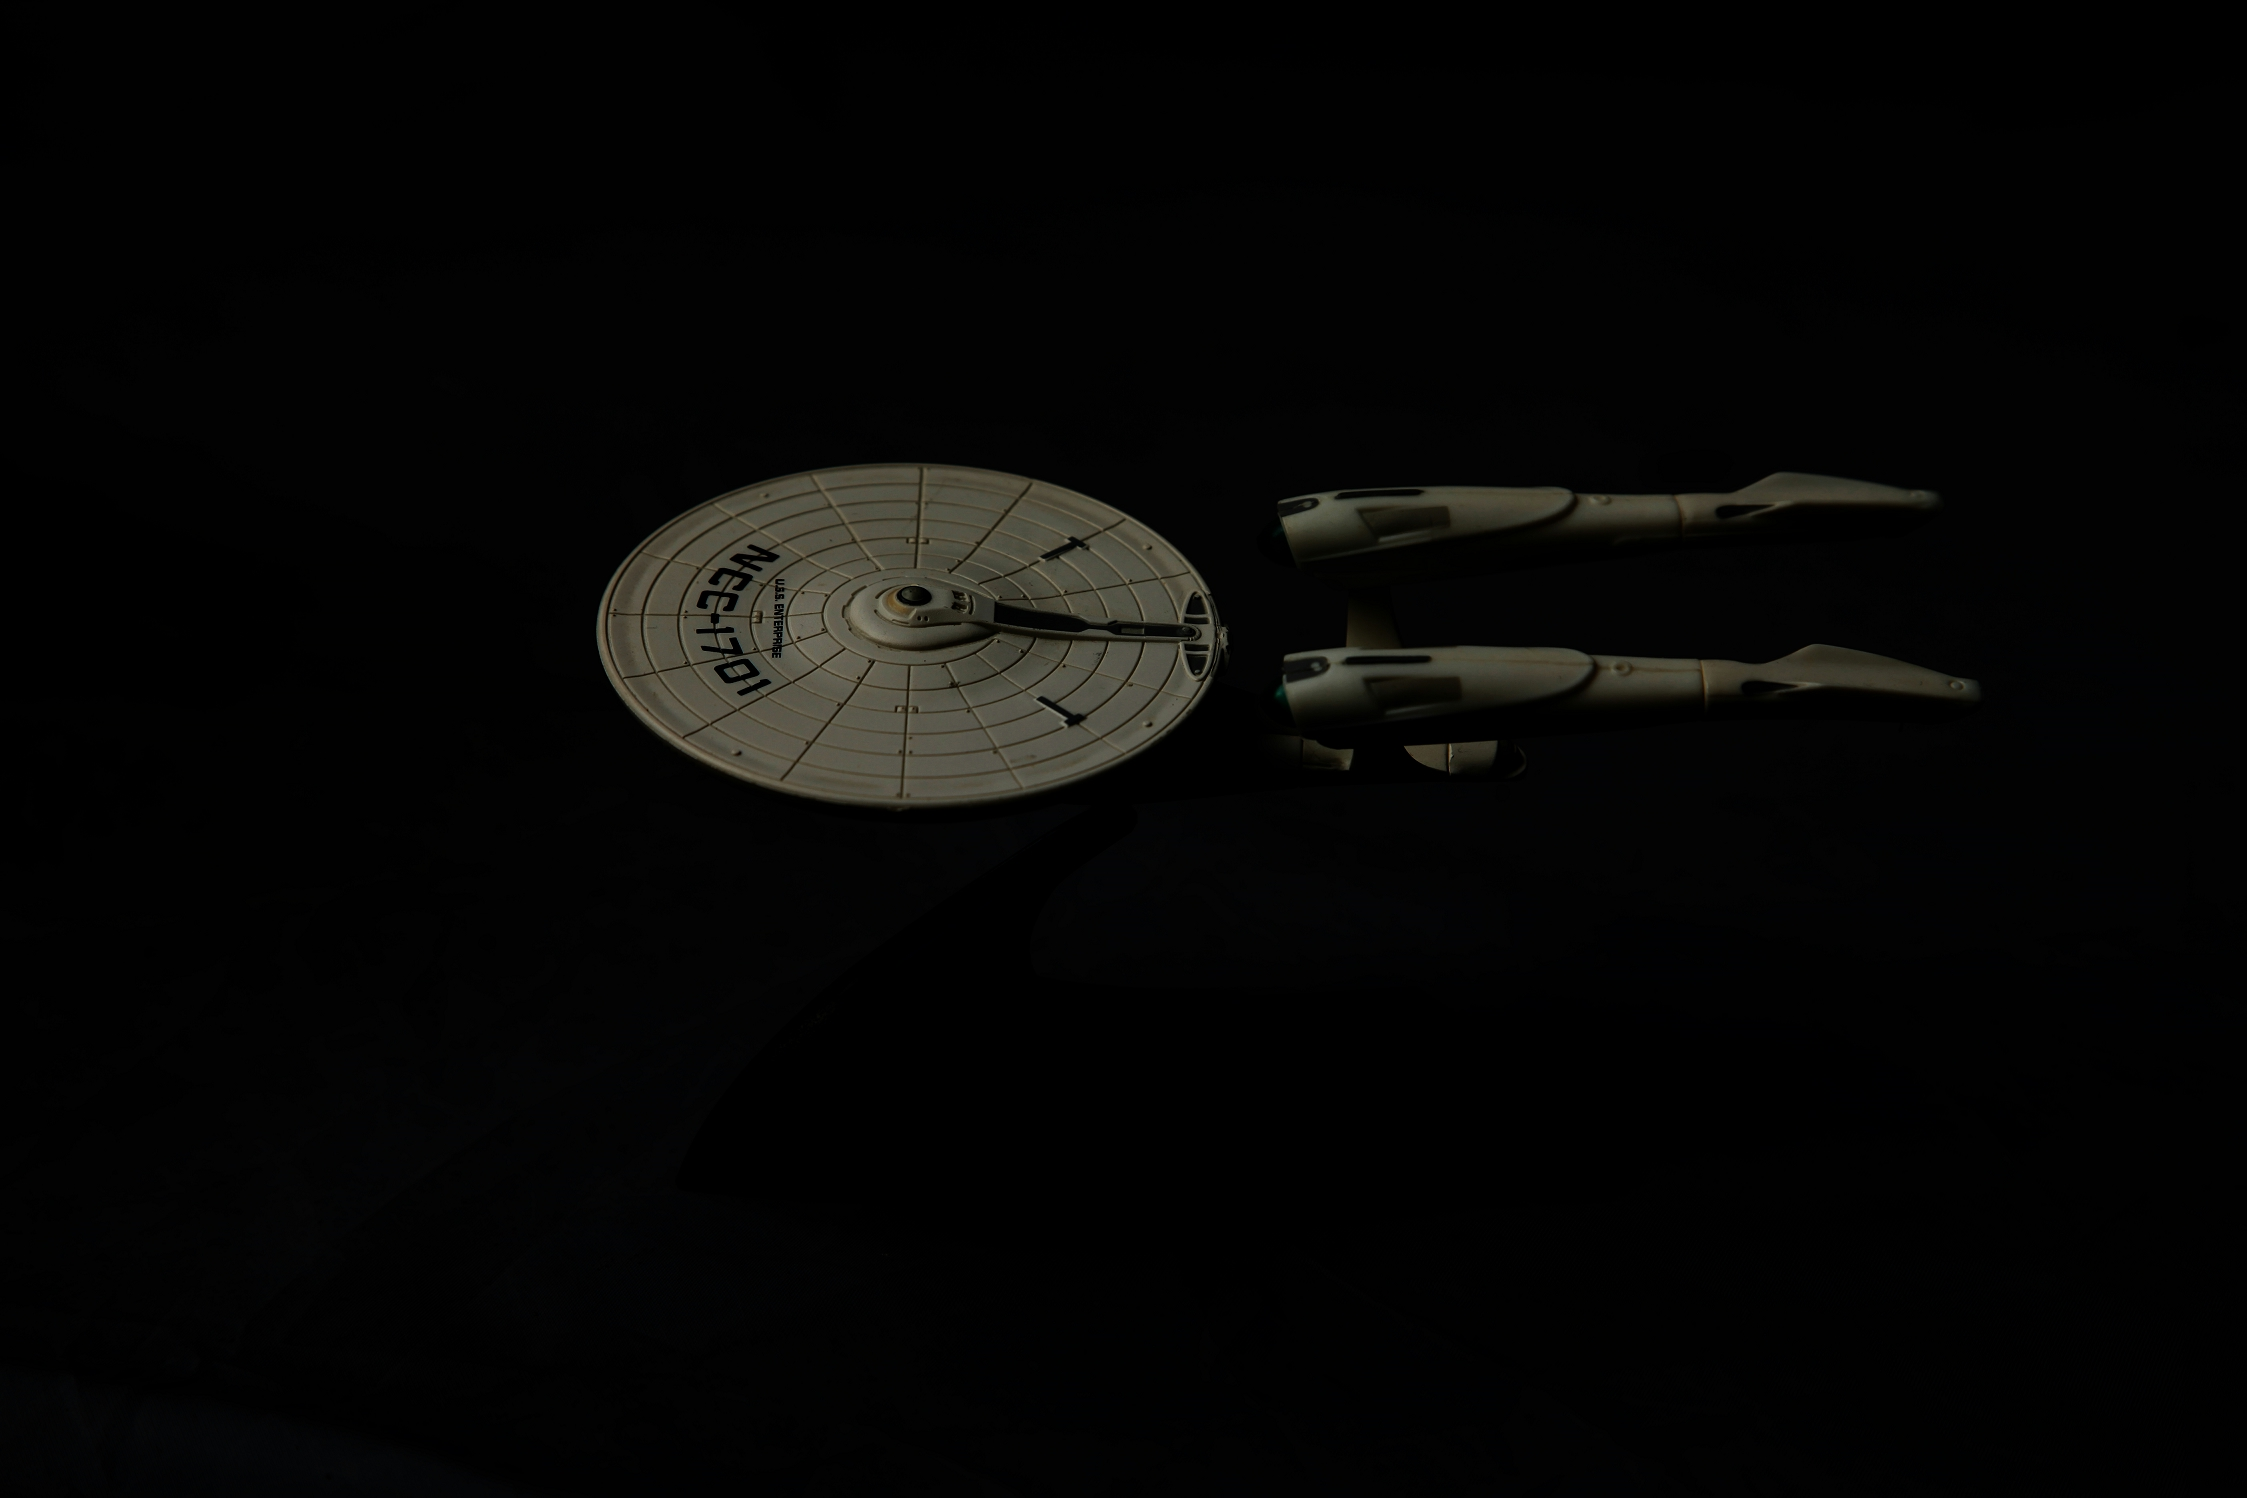 Enterprise NCC-1701 refit